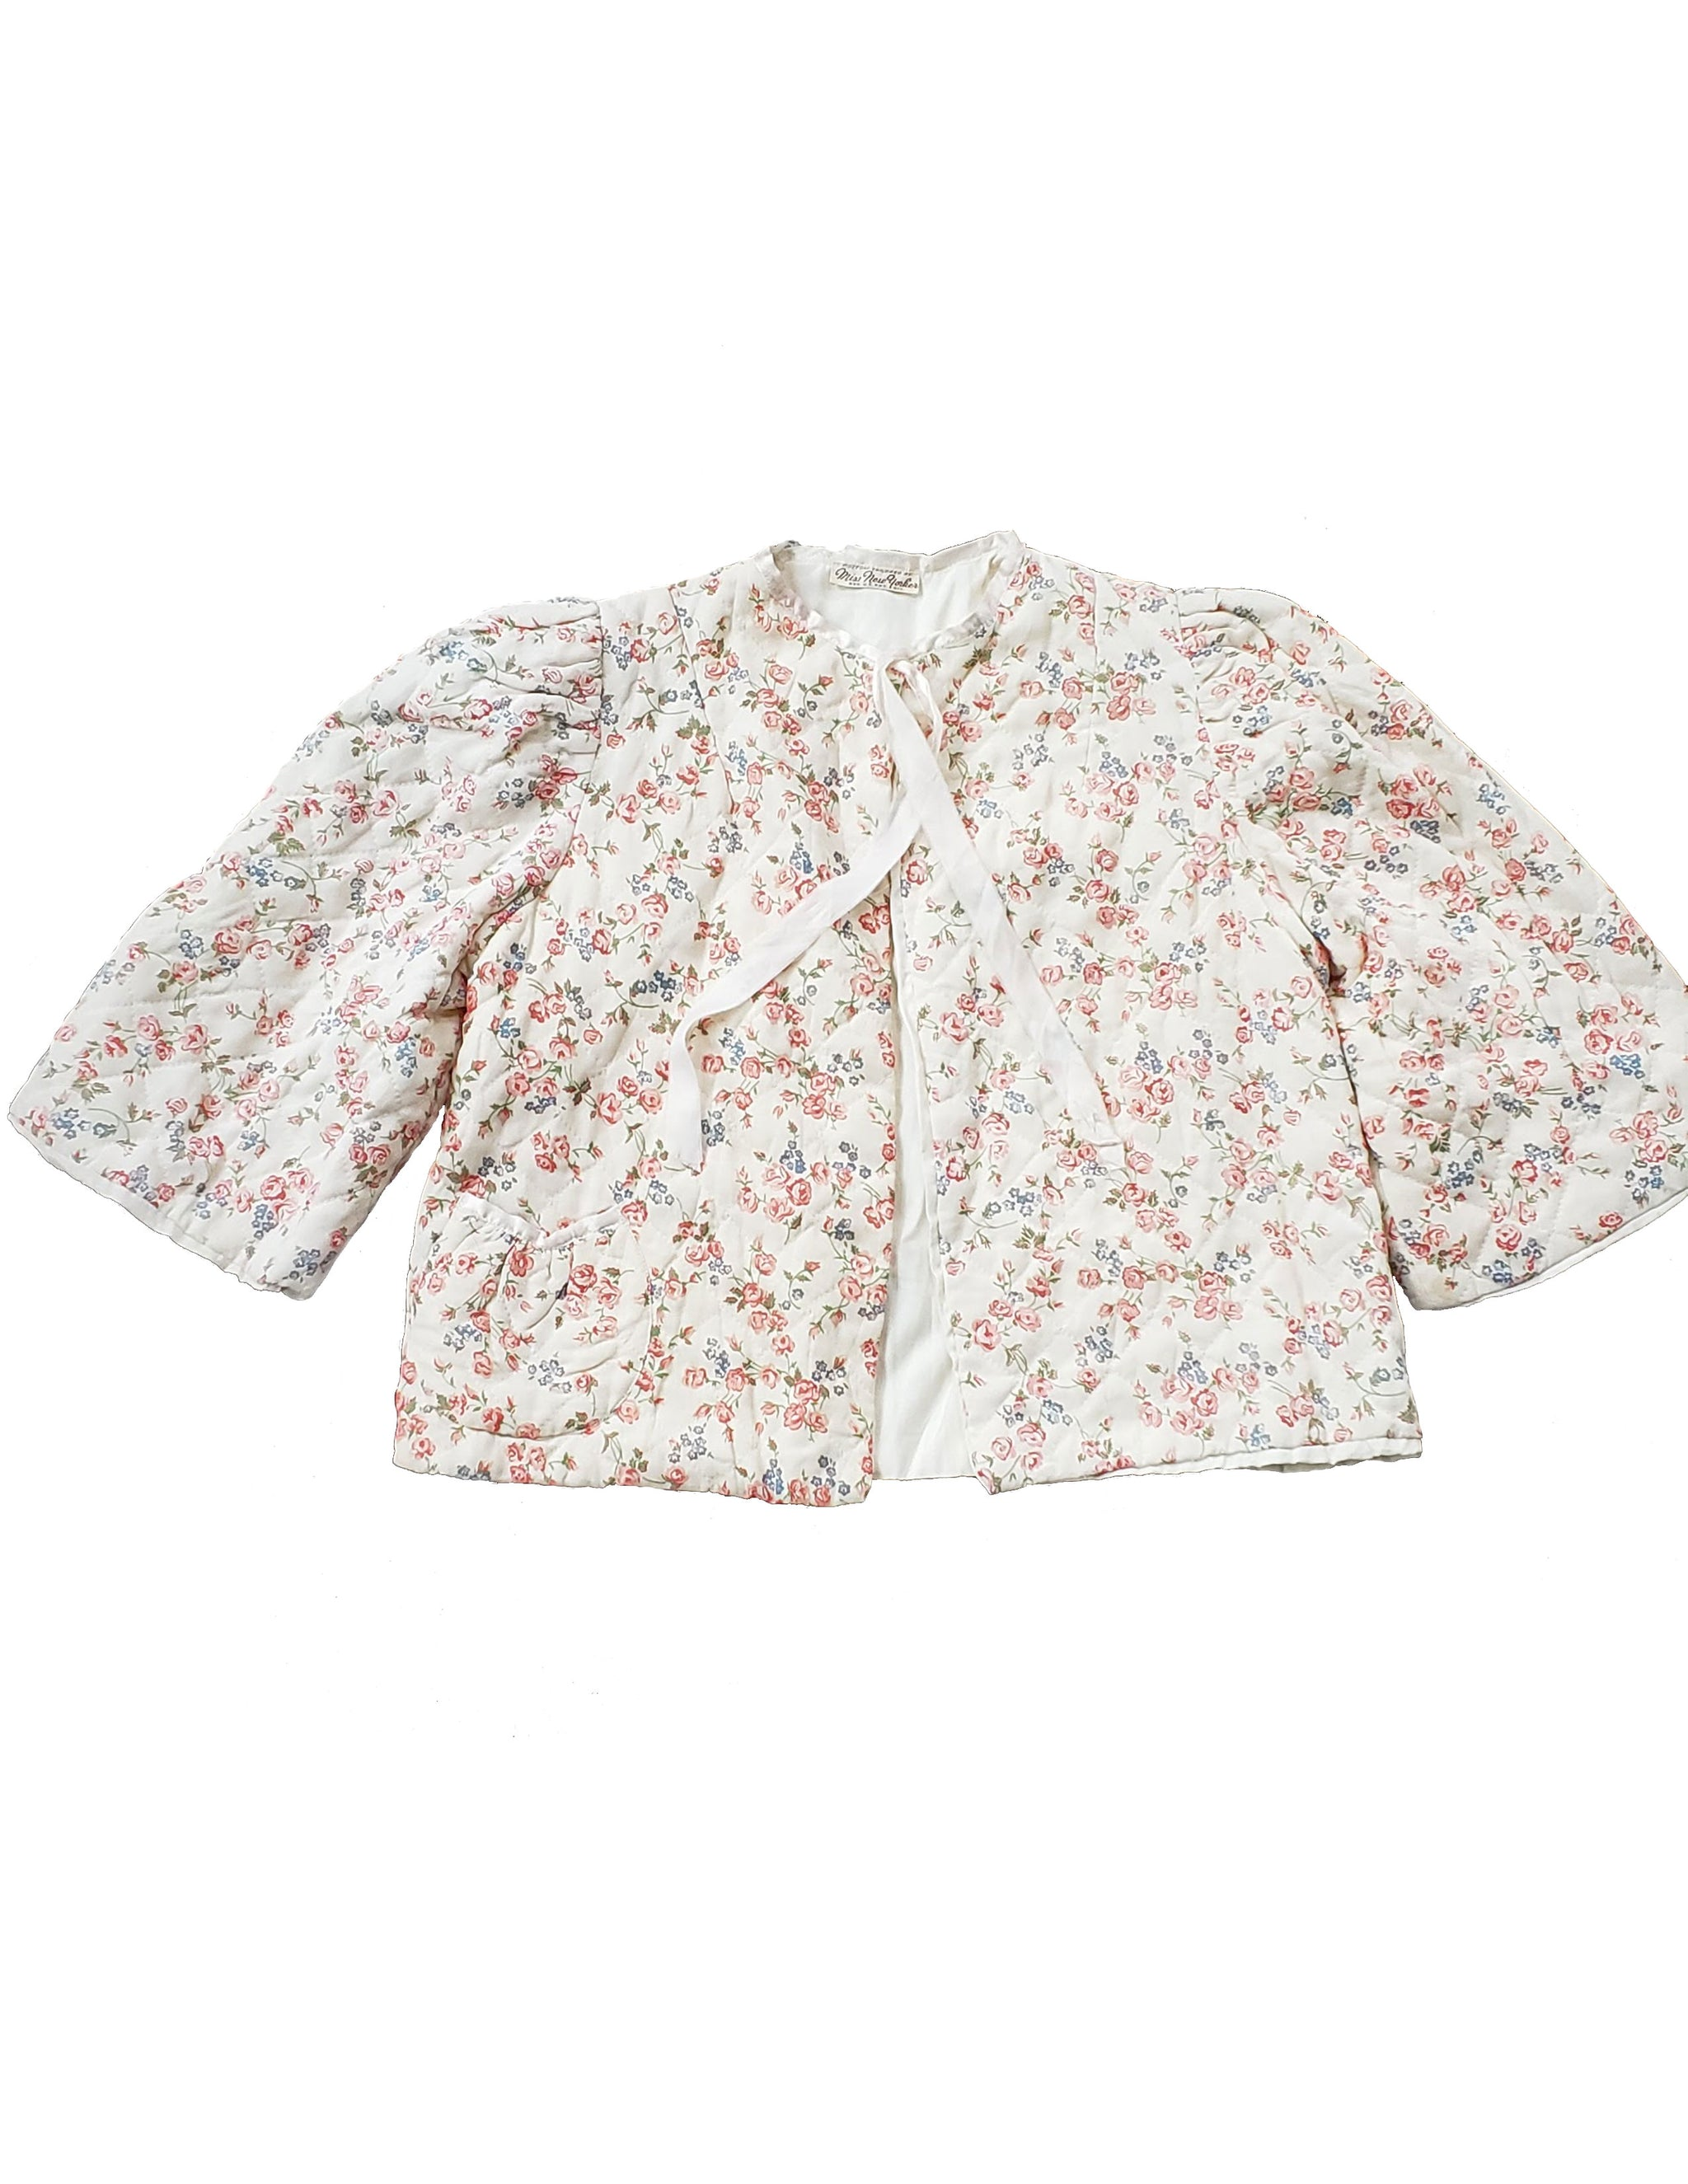 Rare Vintage 1960s Quilted Floral Bed Jacket